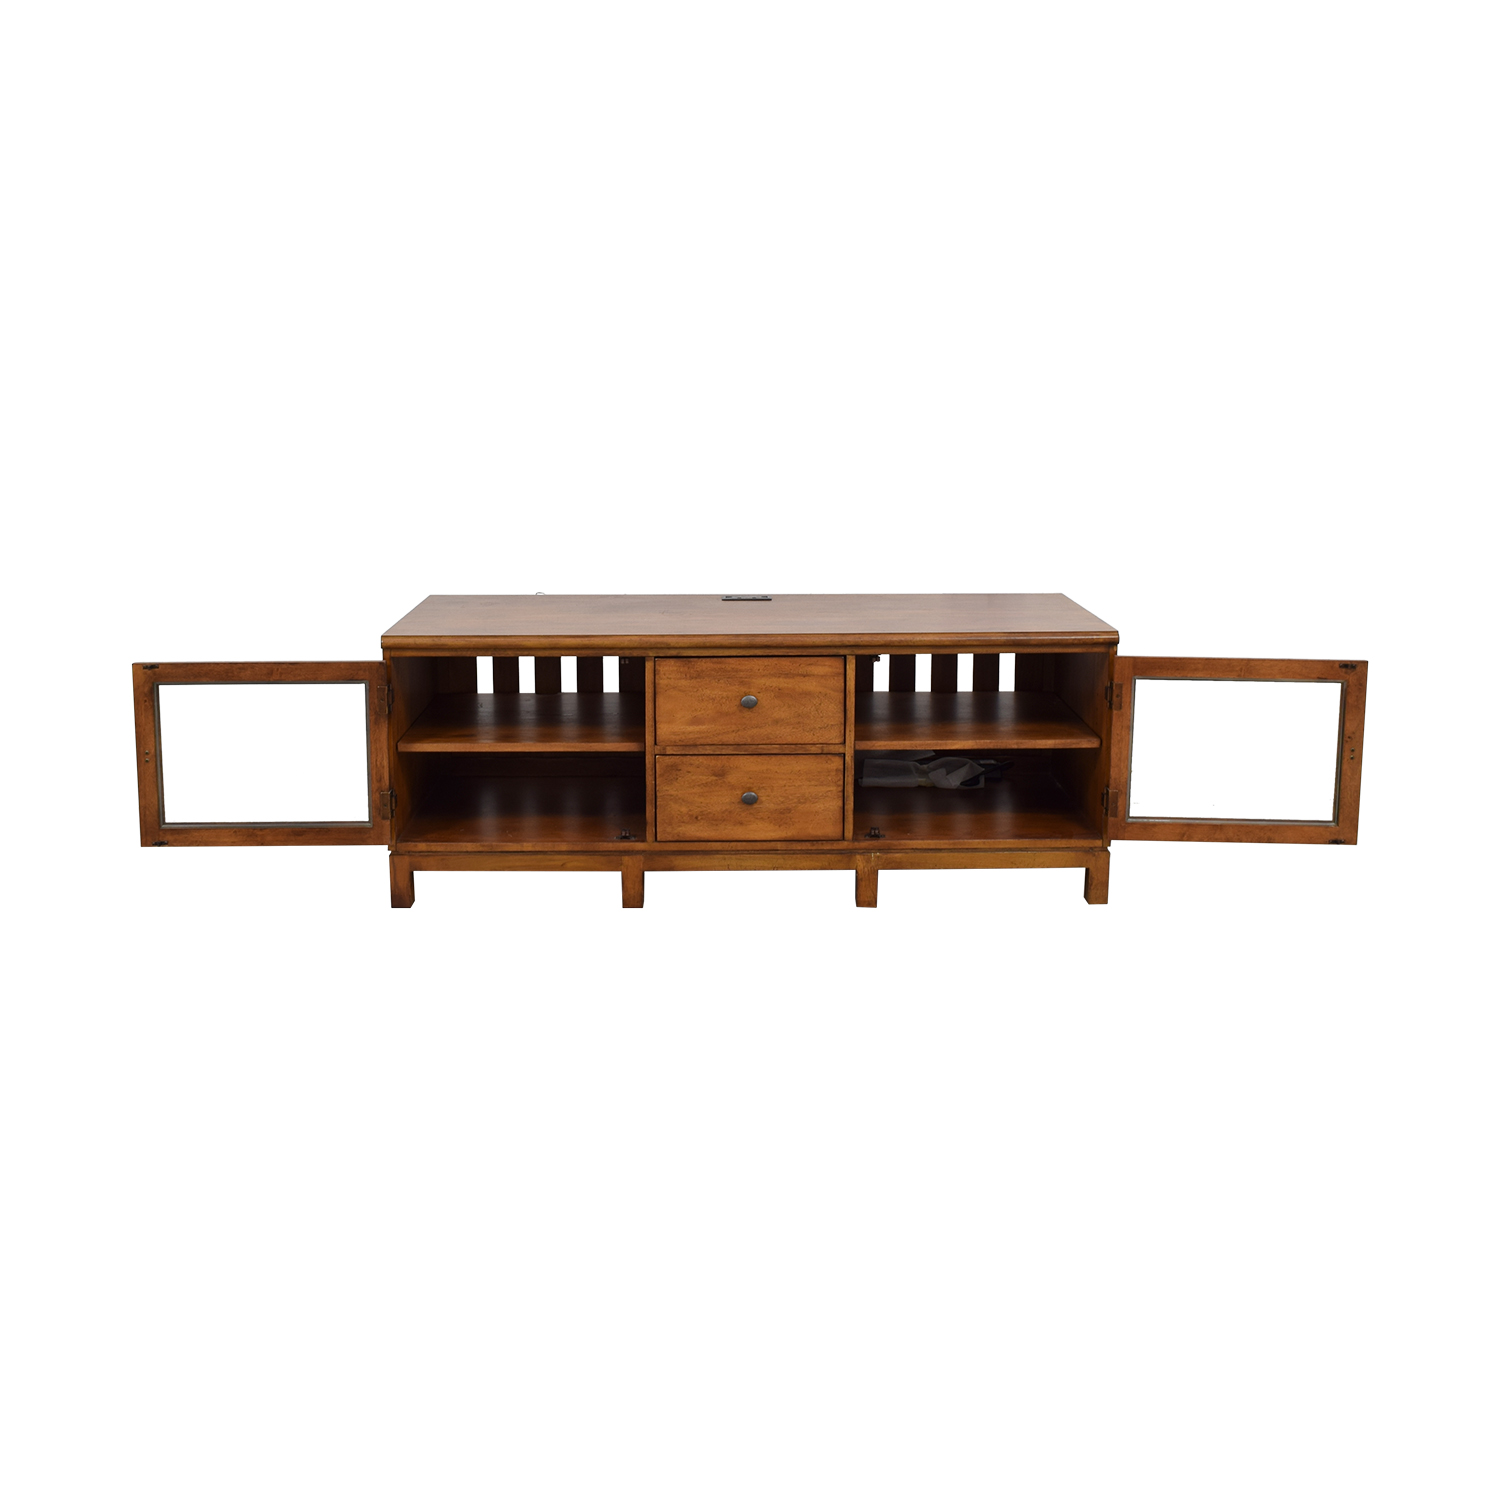 buy Ethan Allan Ethan Allen Wood Two-Drawer Buffet or Media Center online